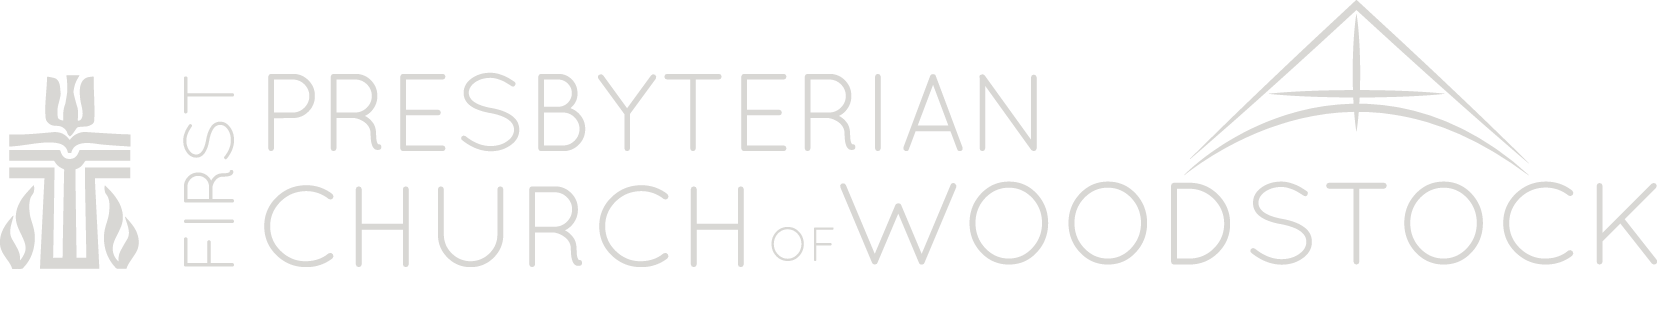 First Presbyterian Church Of Woodstock Logo